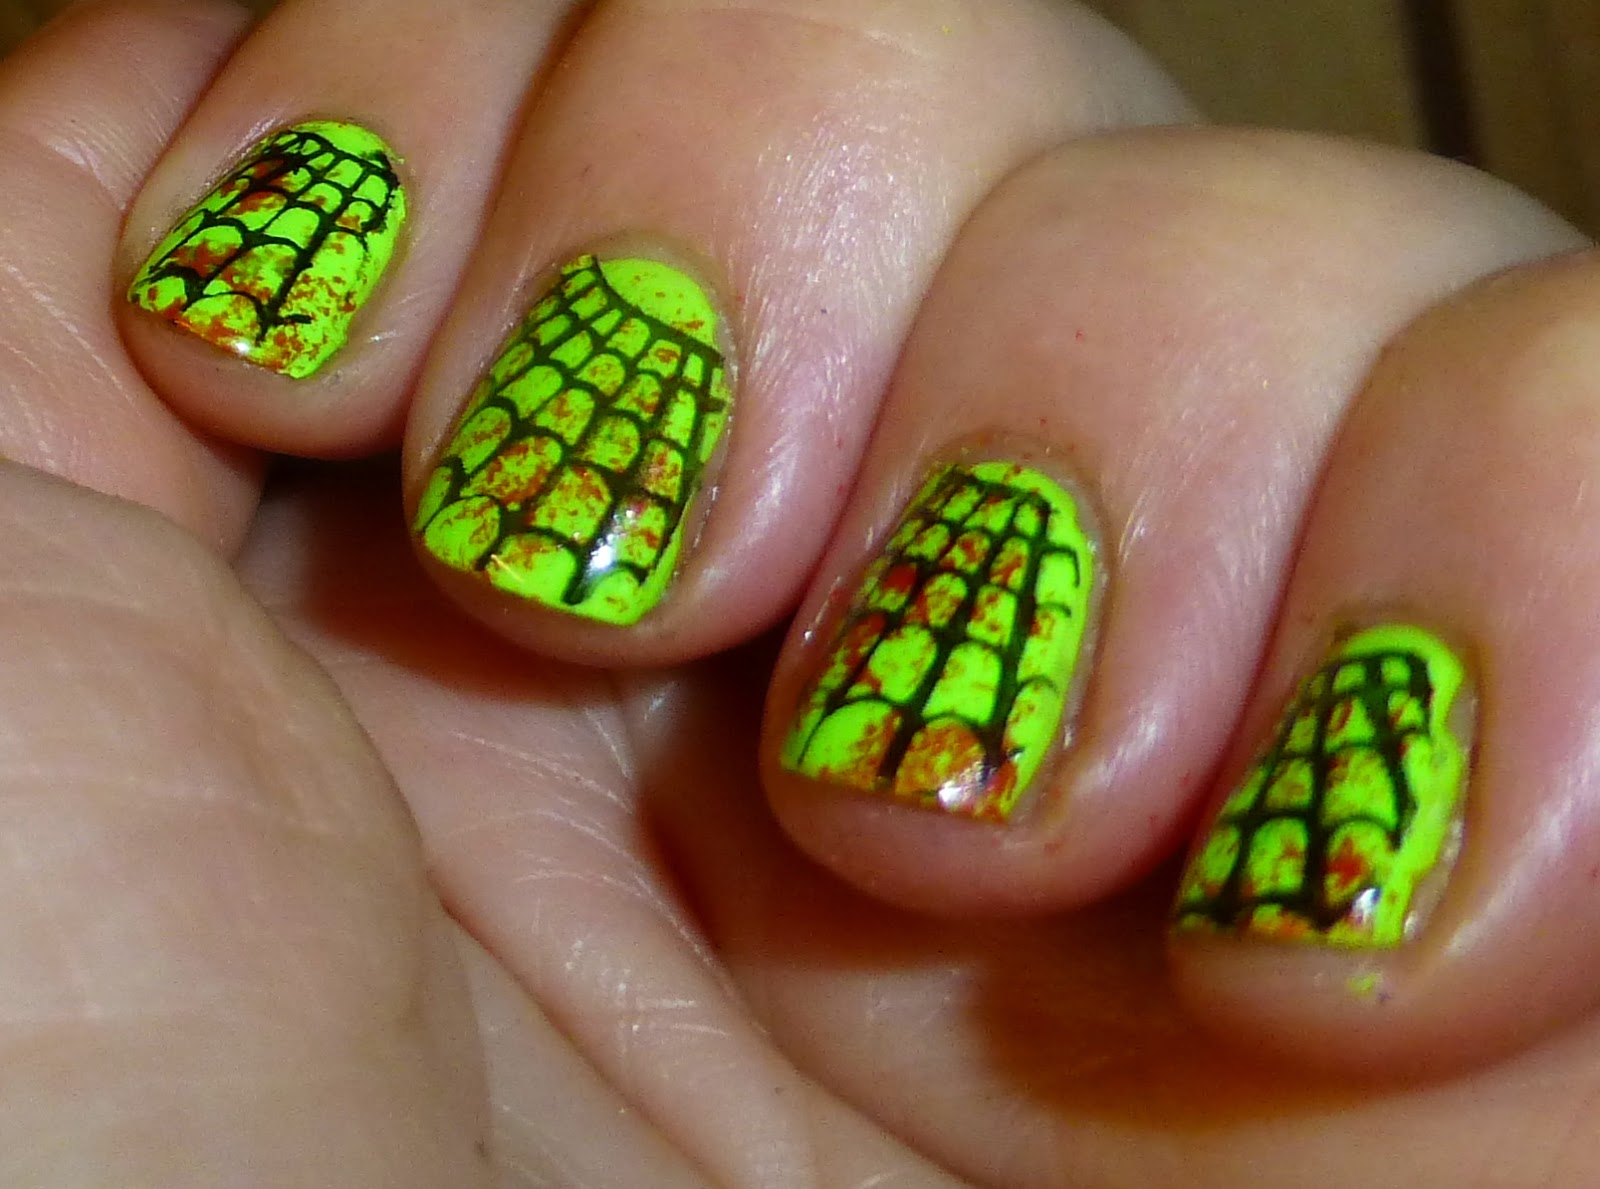 Indieana In Search Of The Holygrail Halloween Nails